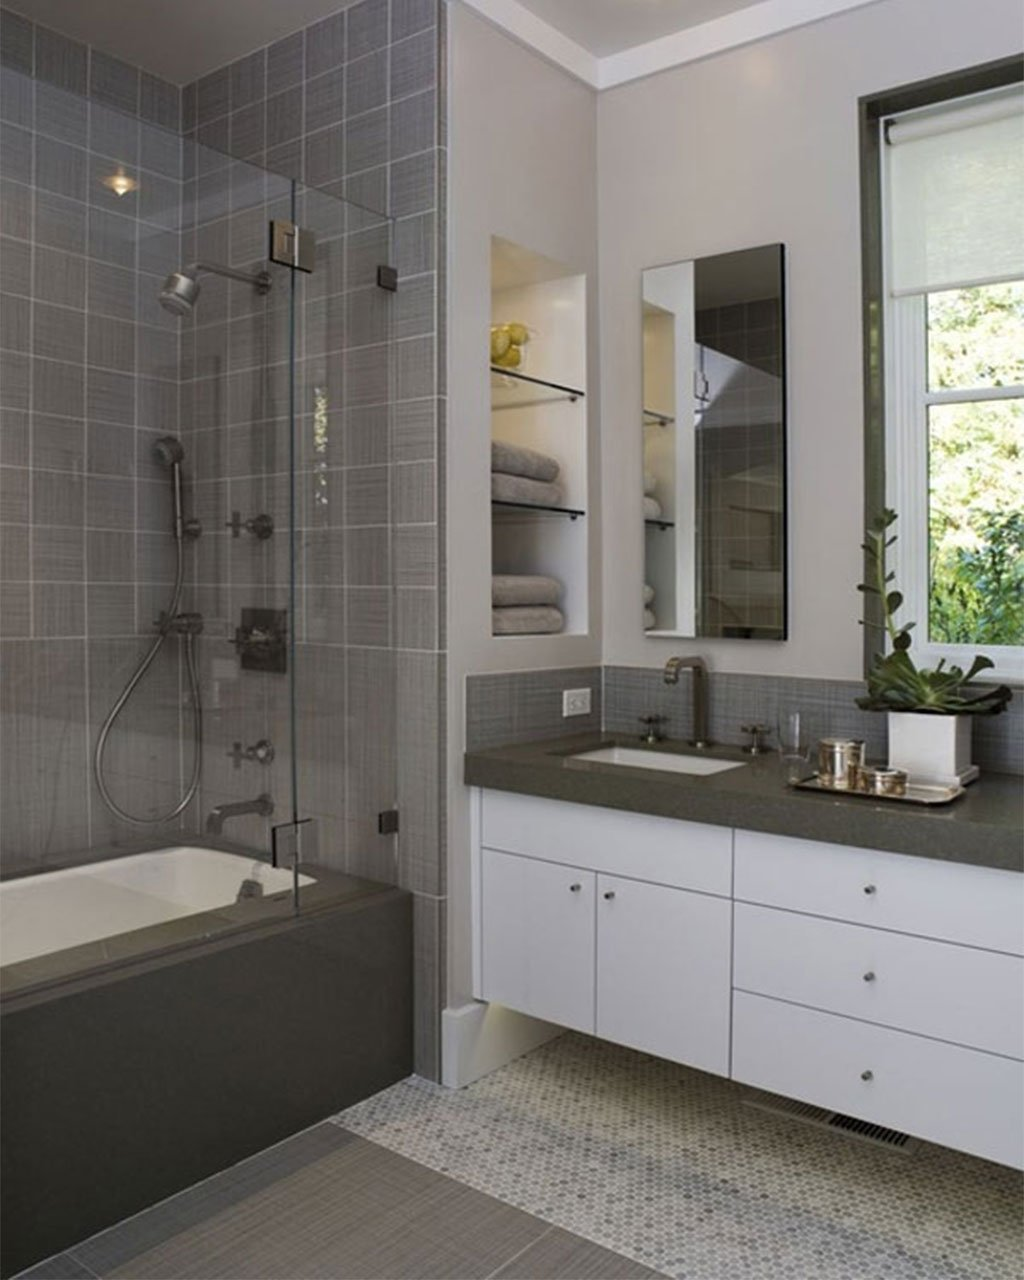 10 Perfect Low Cost Bathroom Remodel Ideas bathroom design remodeling ideas on budget decobizz 2